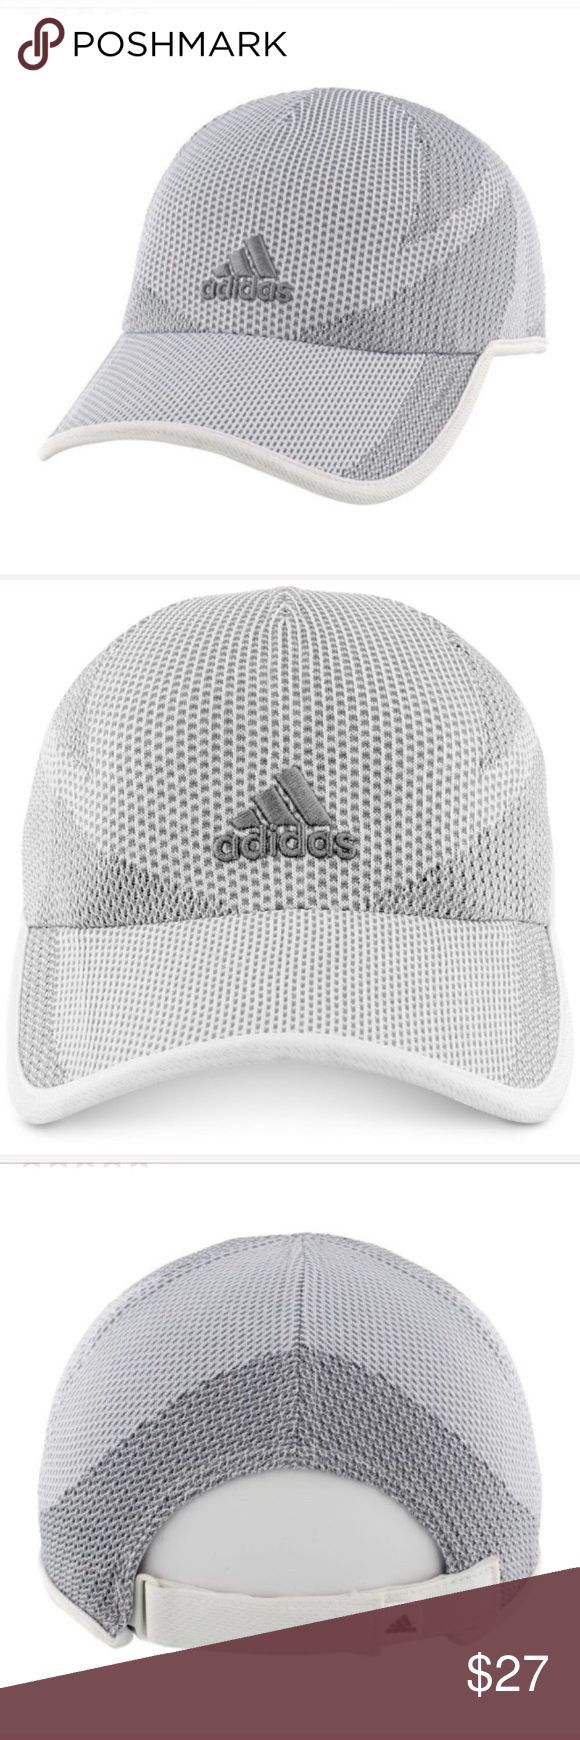 adidas Women's Clima Cool Cap A stylish look from the trails to the court. This adidas cap is in contoured knit patterns that boost breathability. C…